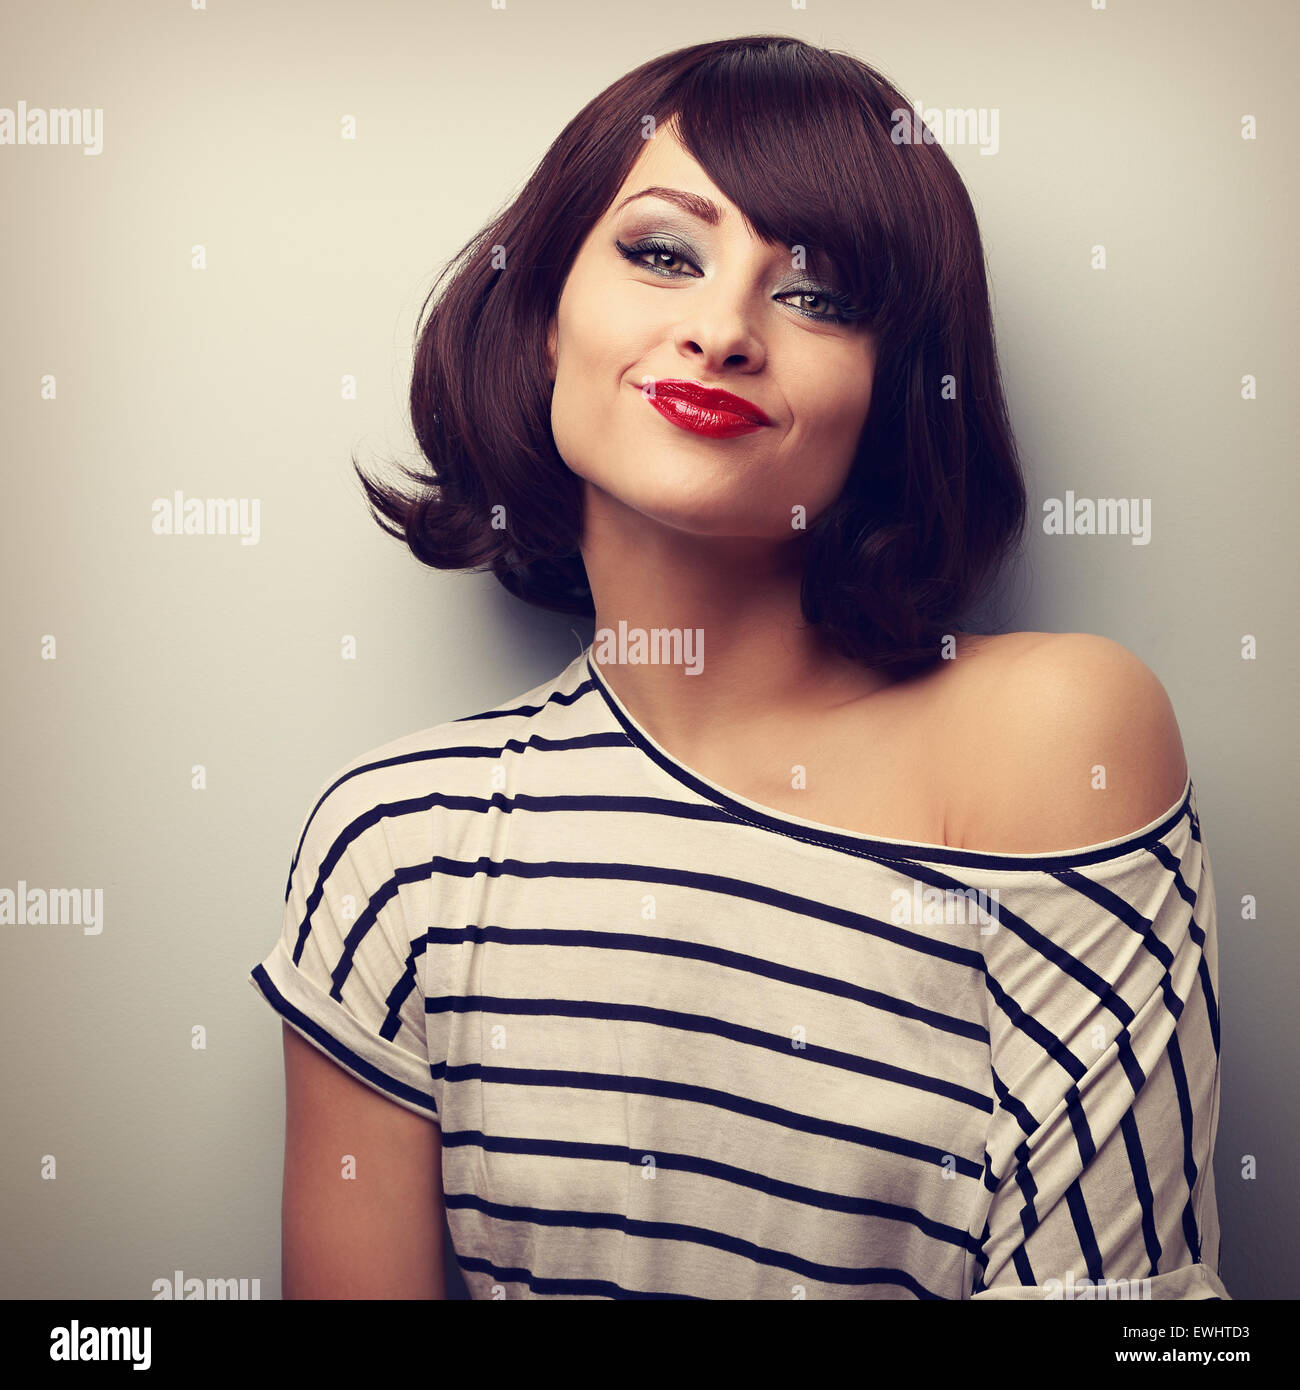 Pretty young woman grimacing with short black hair style in fashion blouse. Vintage closeup portrait Stock Photo